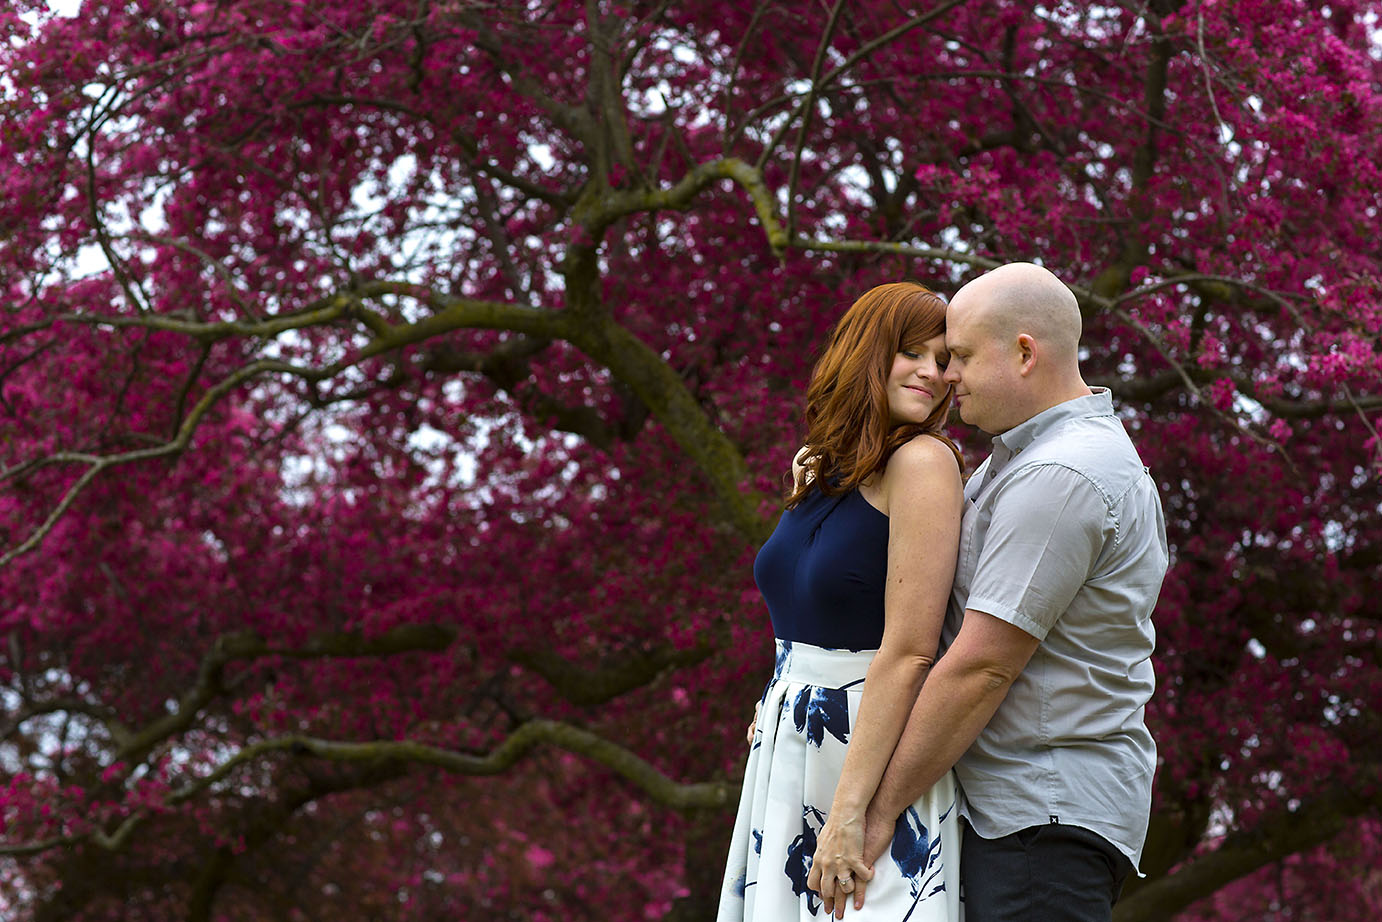 Engagement Photo Session in Royal Botanical Gardens | John and Heather